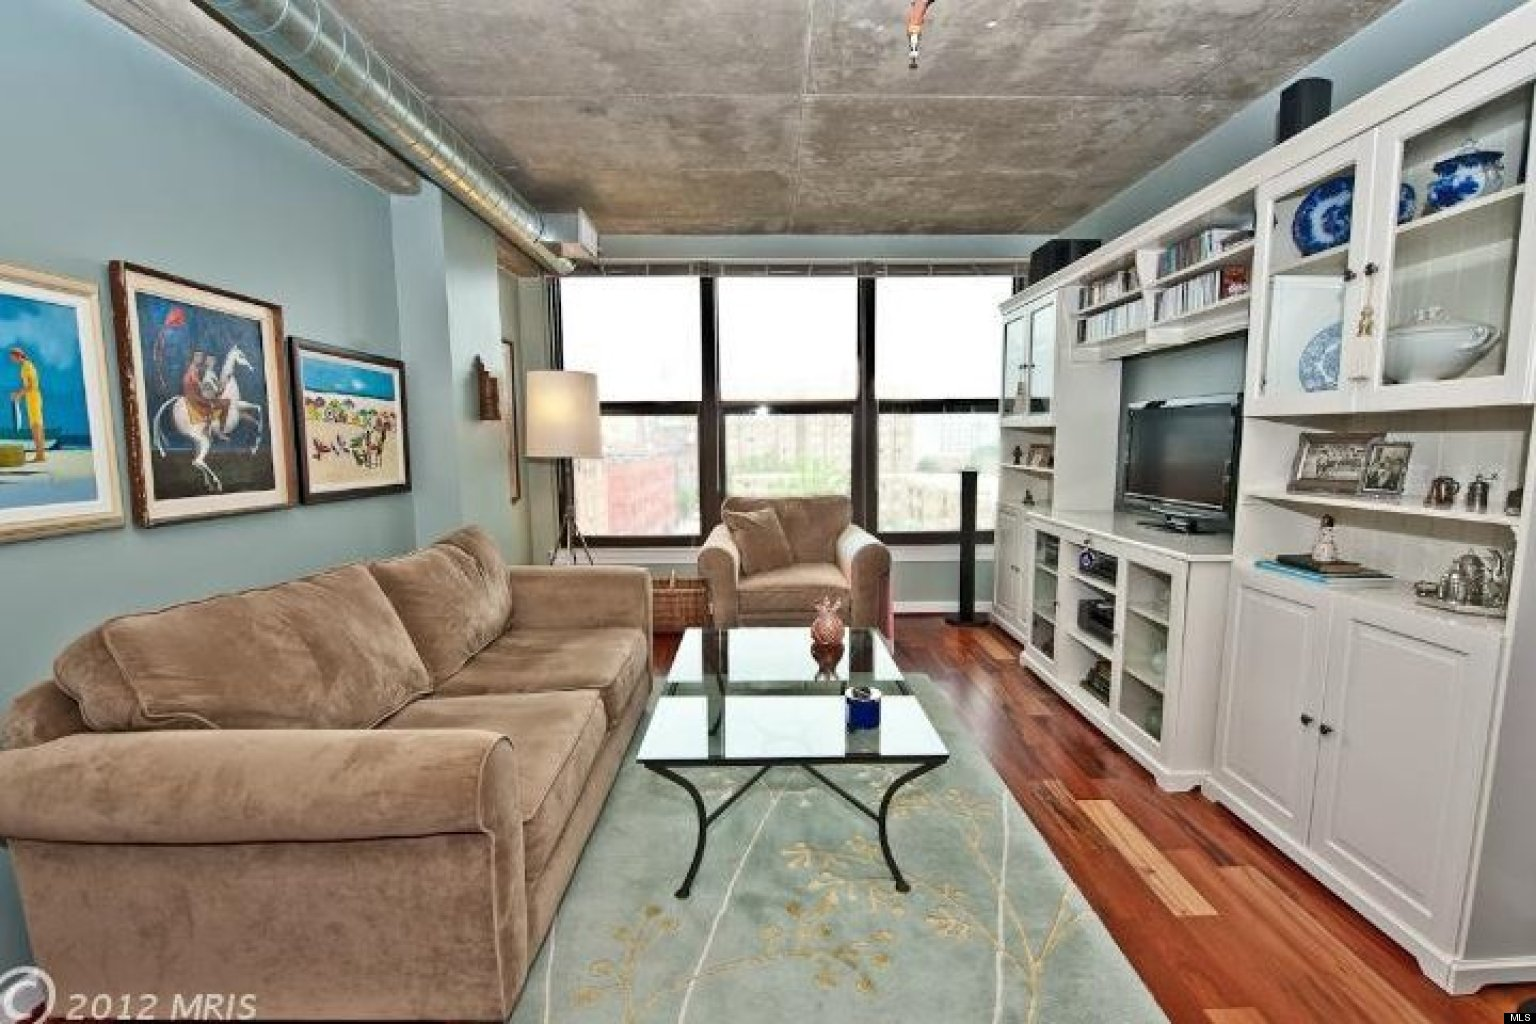 d c real estate tiny condos and houses for sale photos